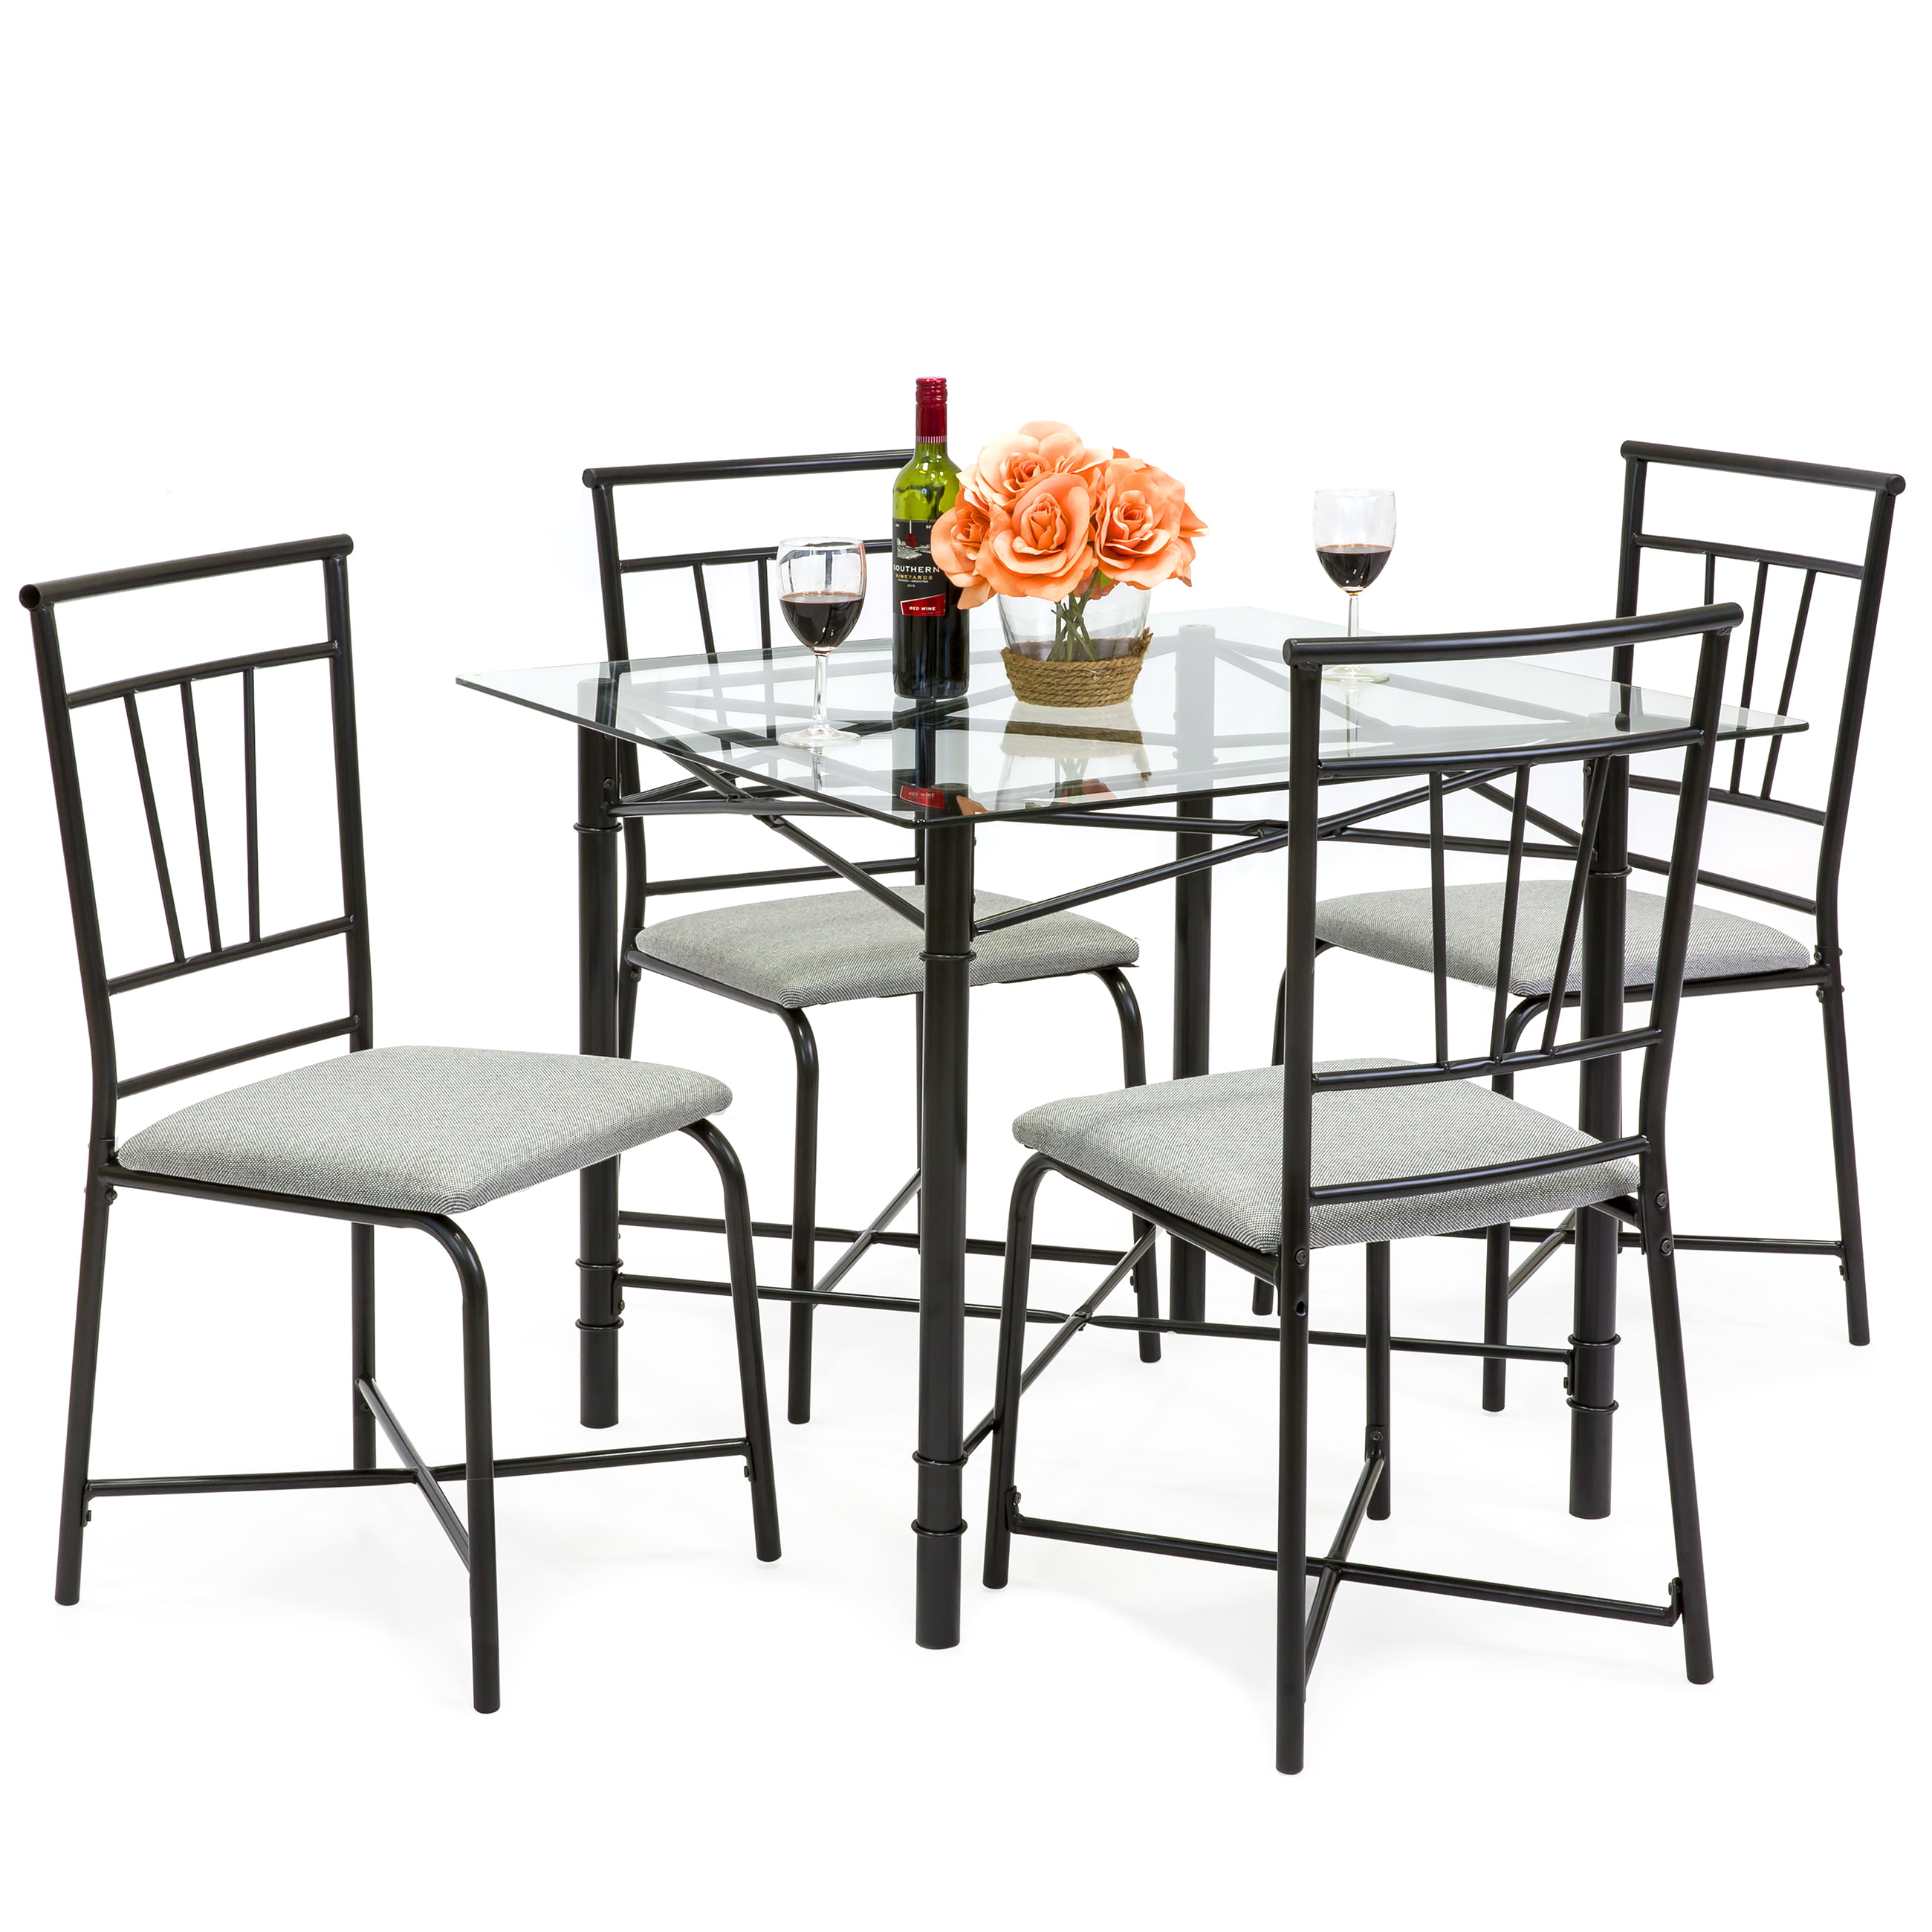 Dining Glass Table Set: Best Choice Products 5-Piece Square Glass Dining Table Set